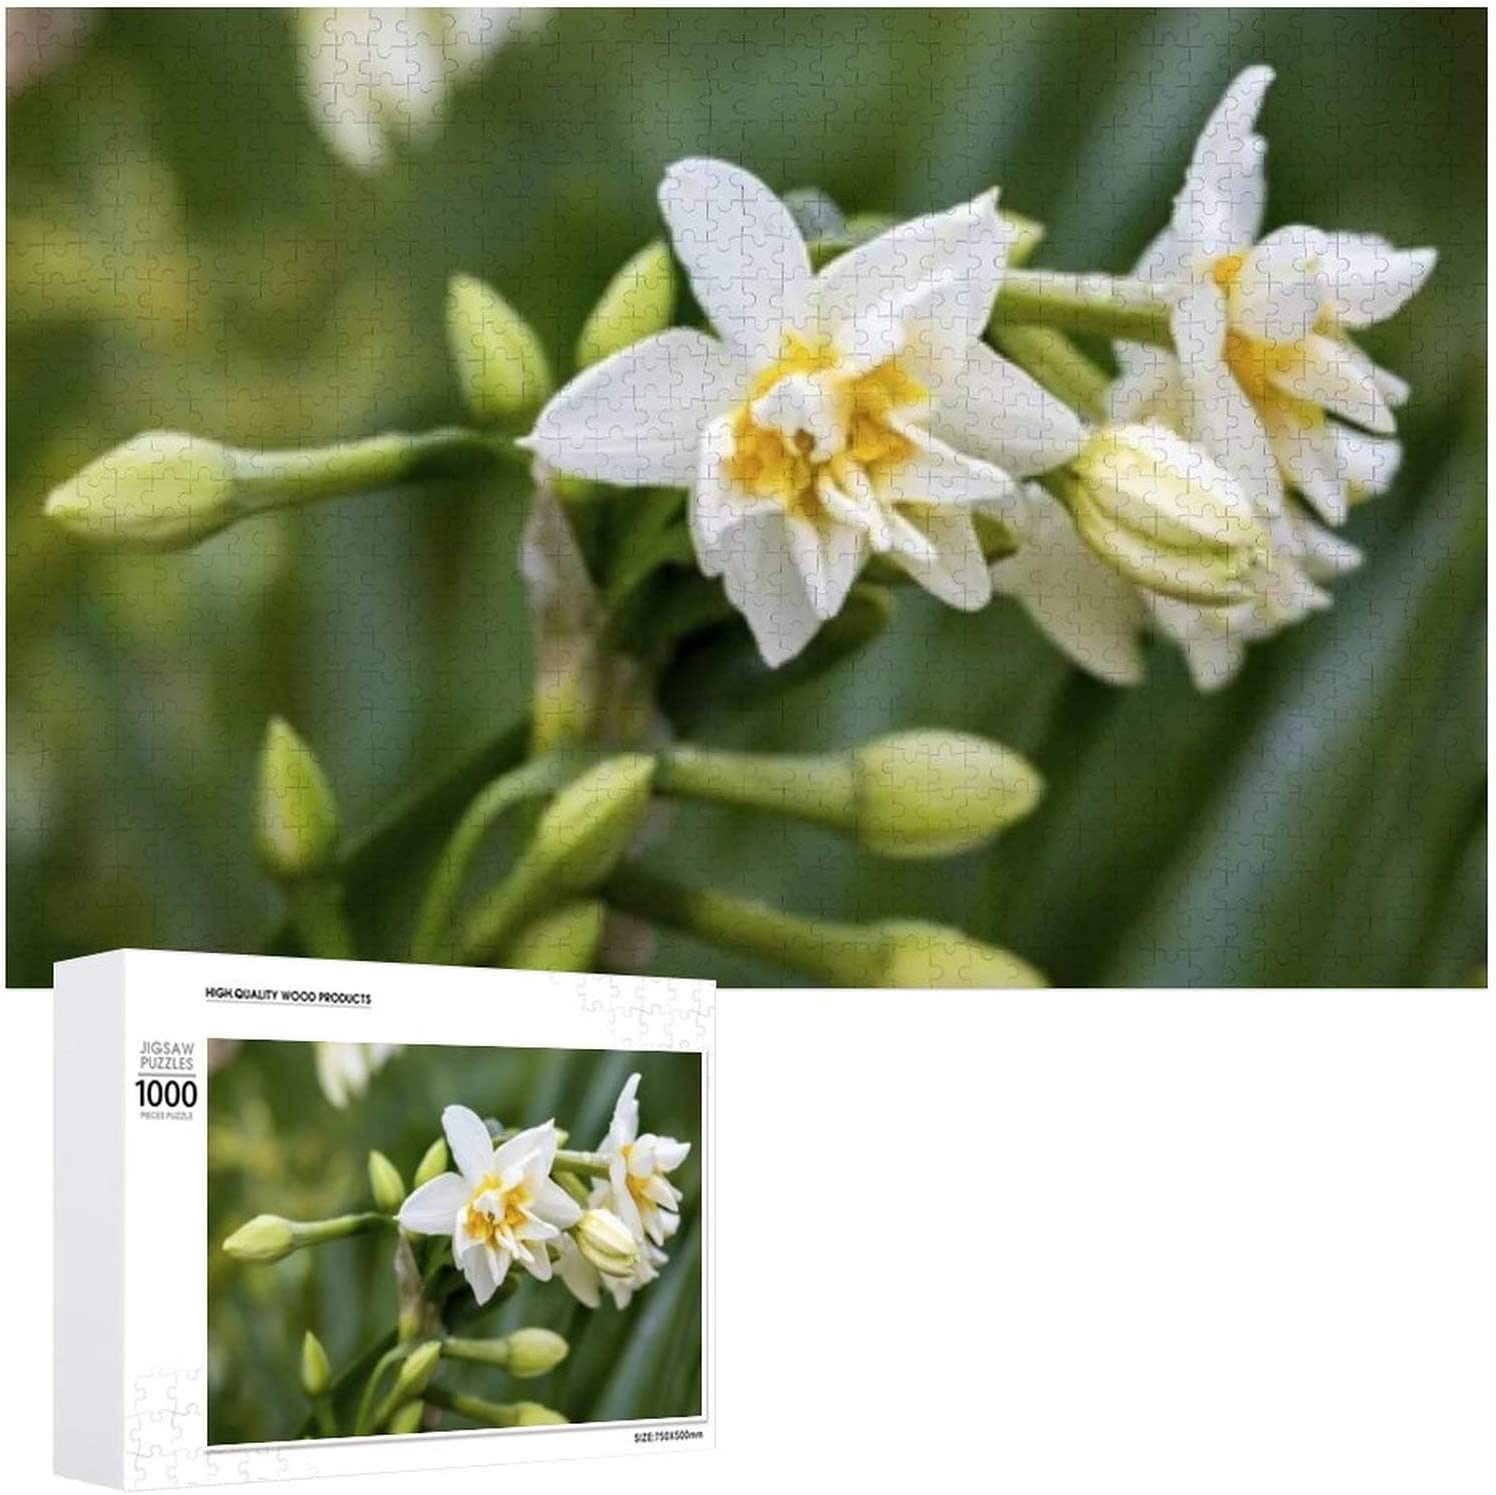 Daffodils - 1000 Jigsaw Puzzles for Age 12 OFFer Adults 5% OFF Kids Yea